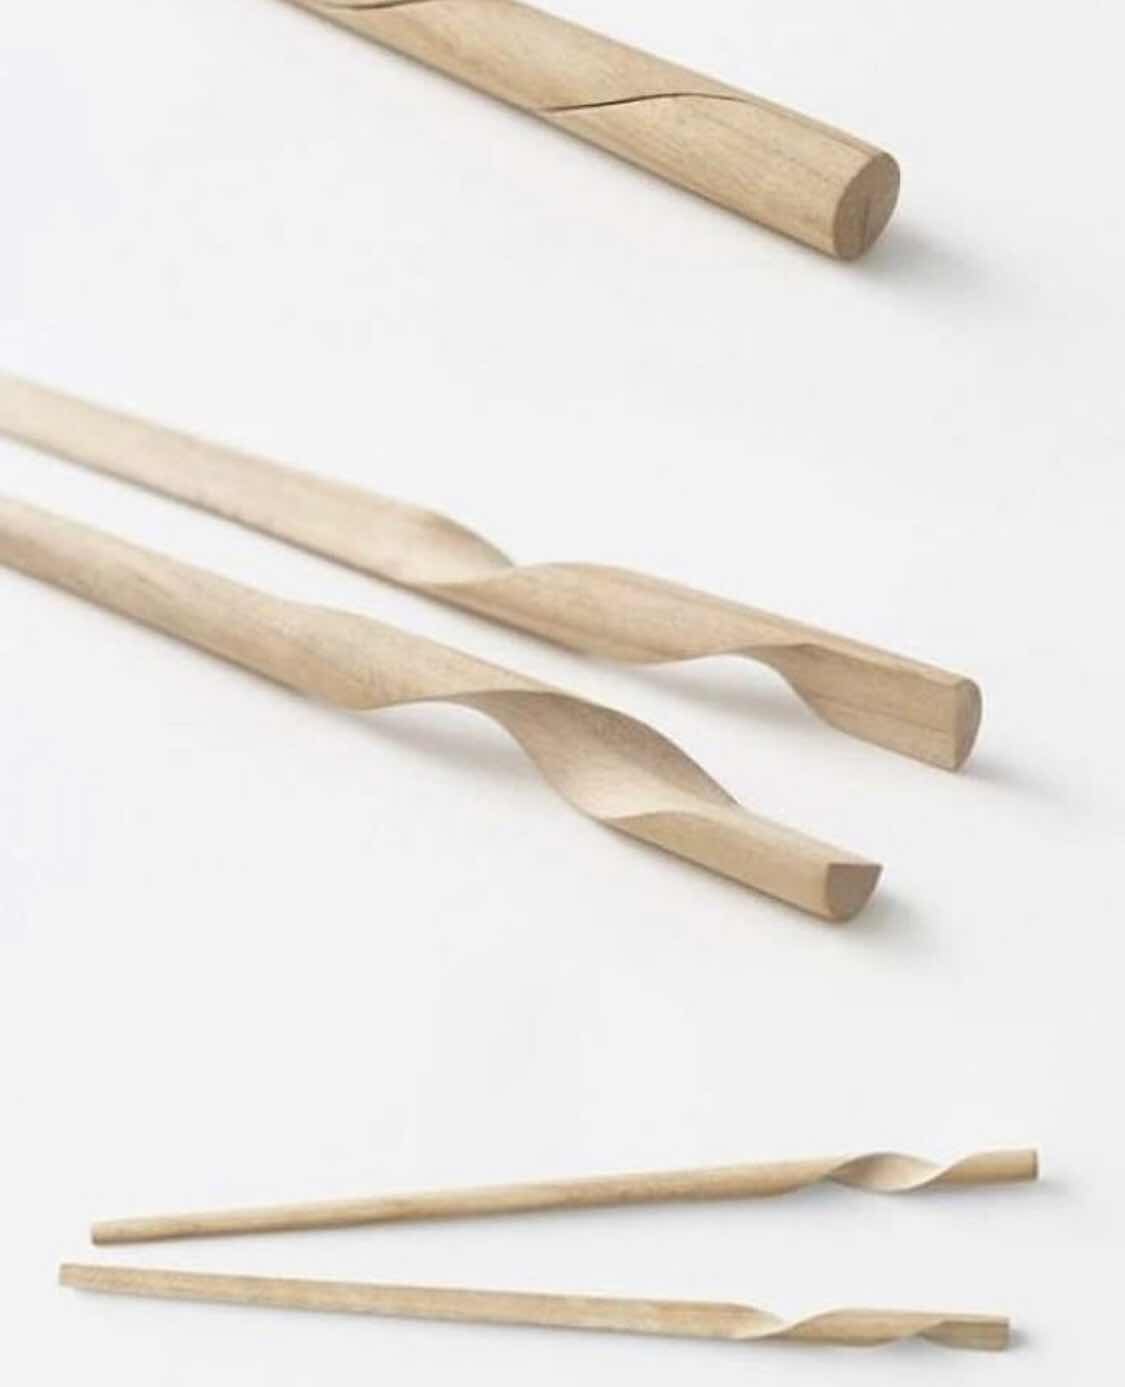 Chopsticks by Nendo